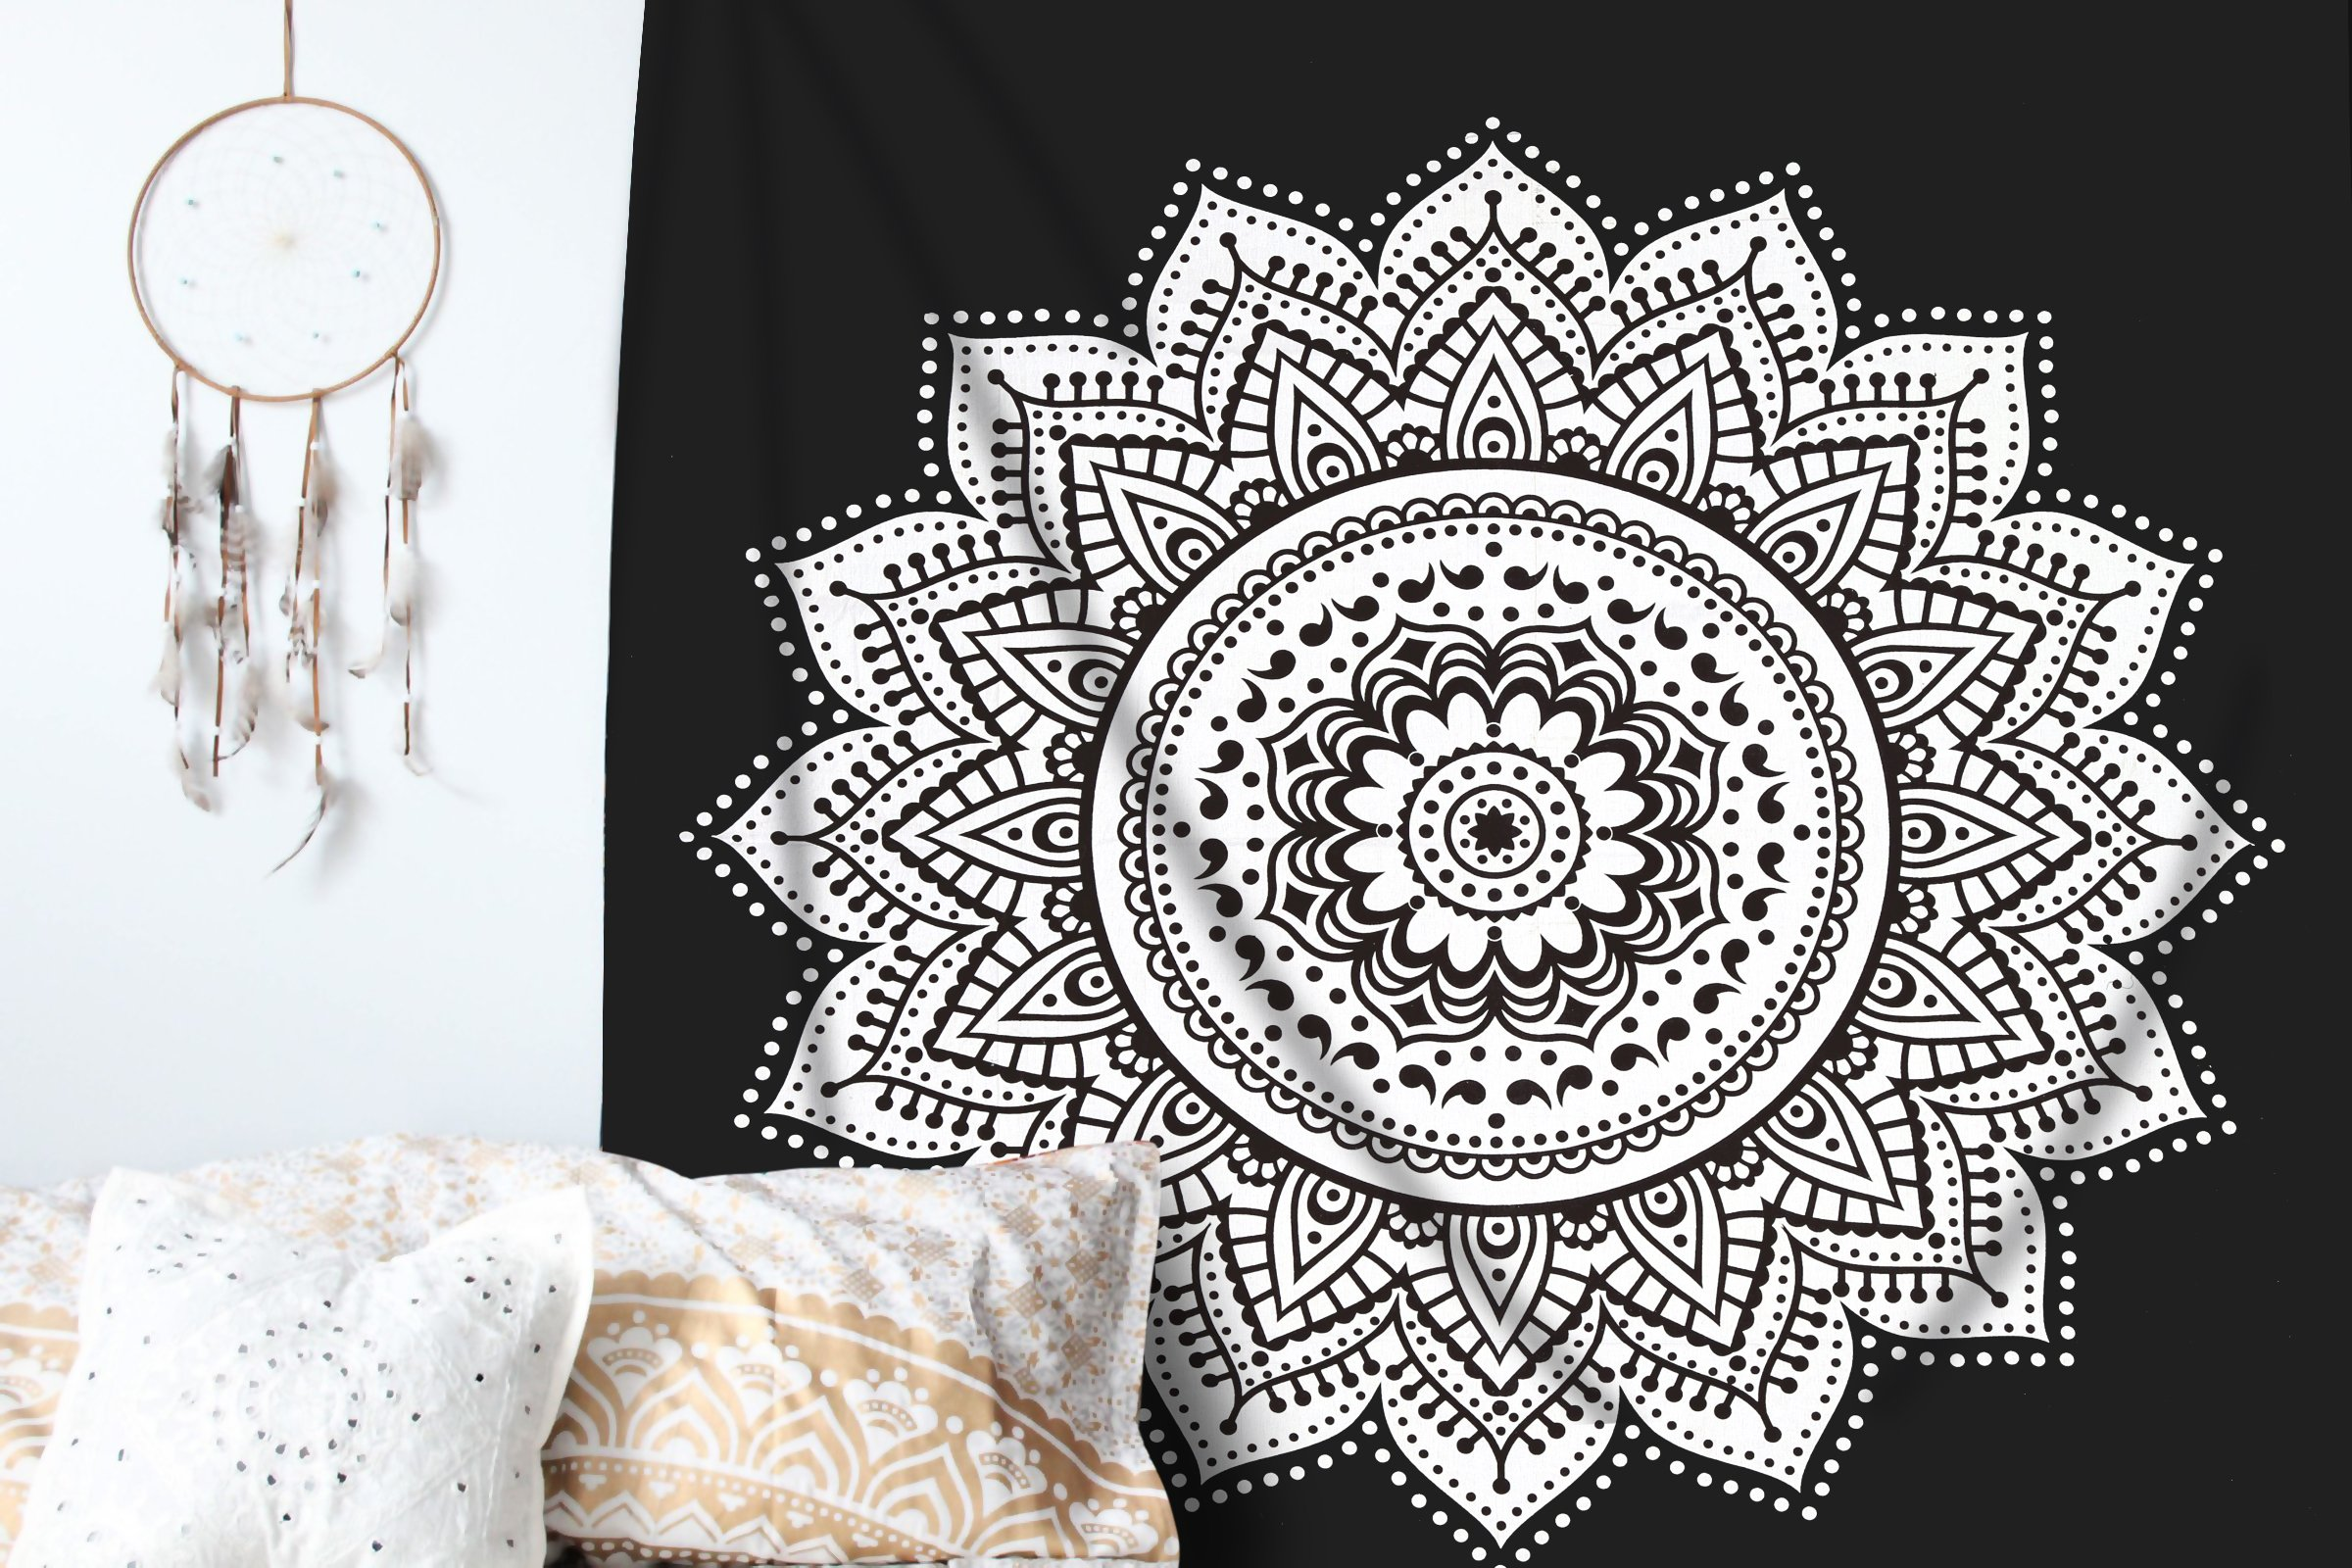 Ombre Mandala Tapestry - Black and White Indian/Hindu Wall Hanging - 100% Cotton - Bohemian Wall Decor by RawyalCrafts